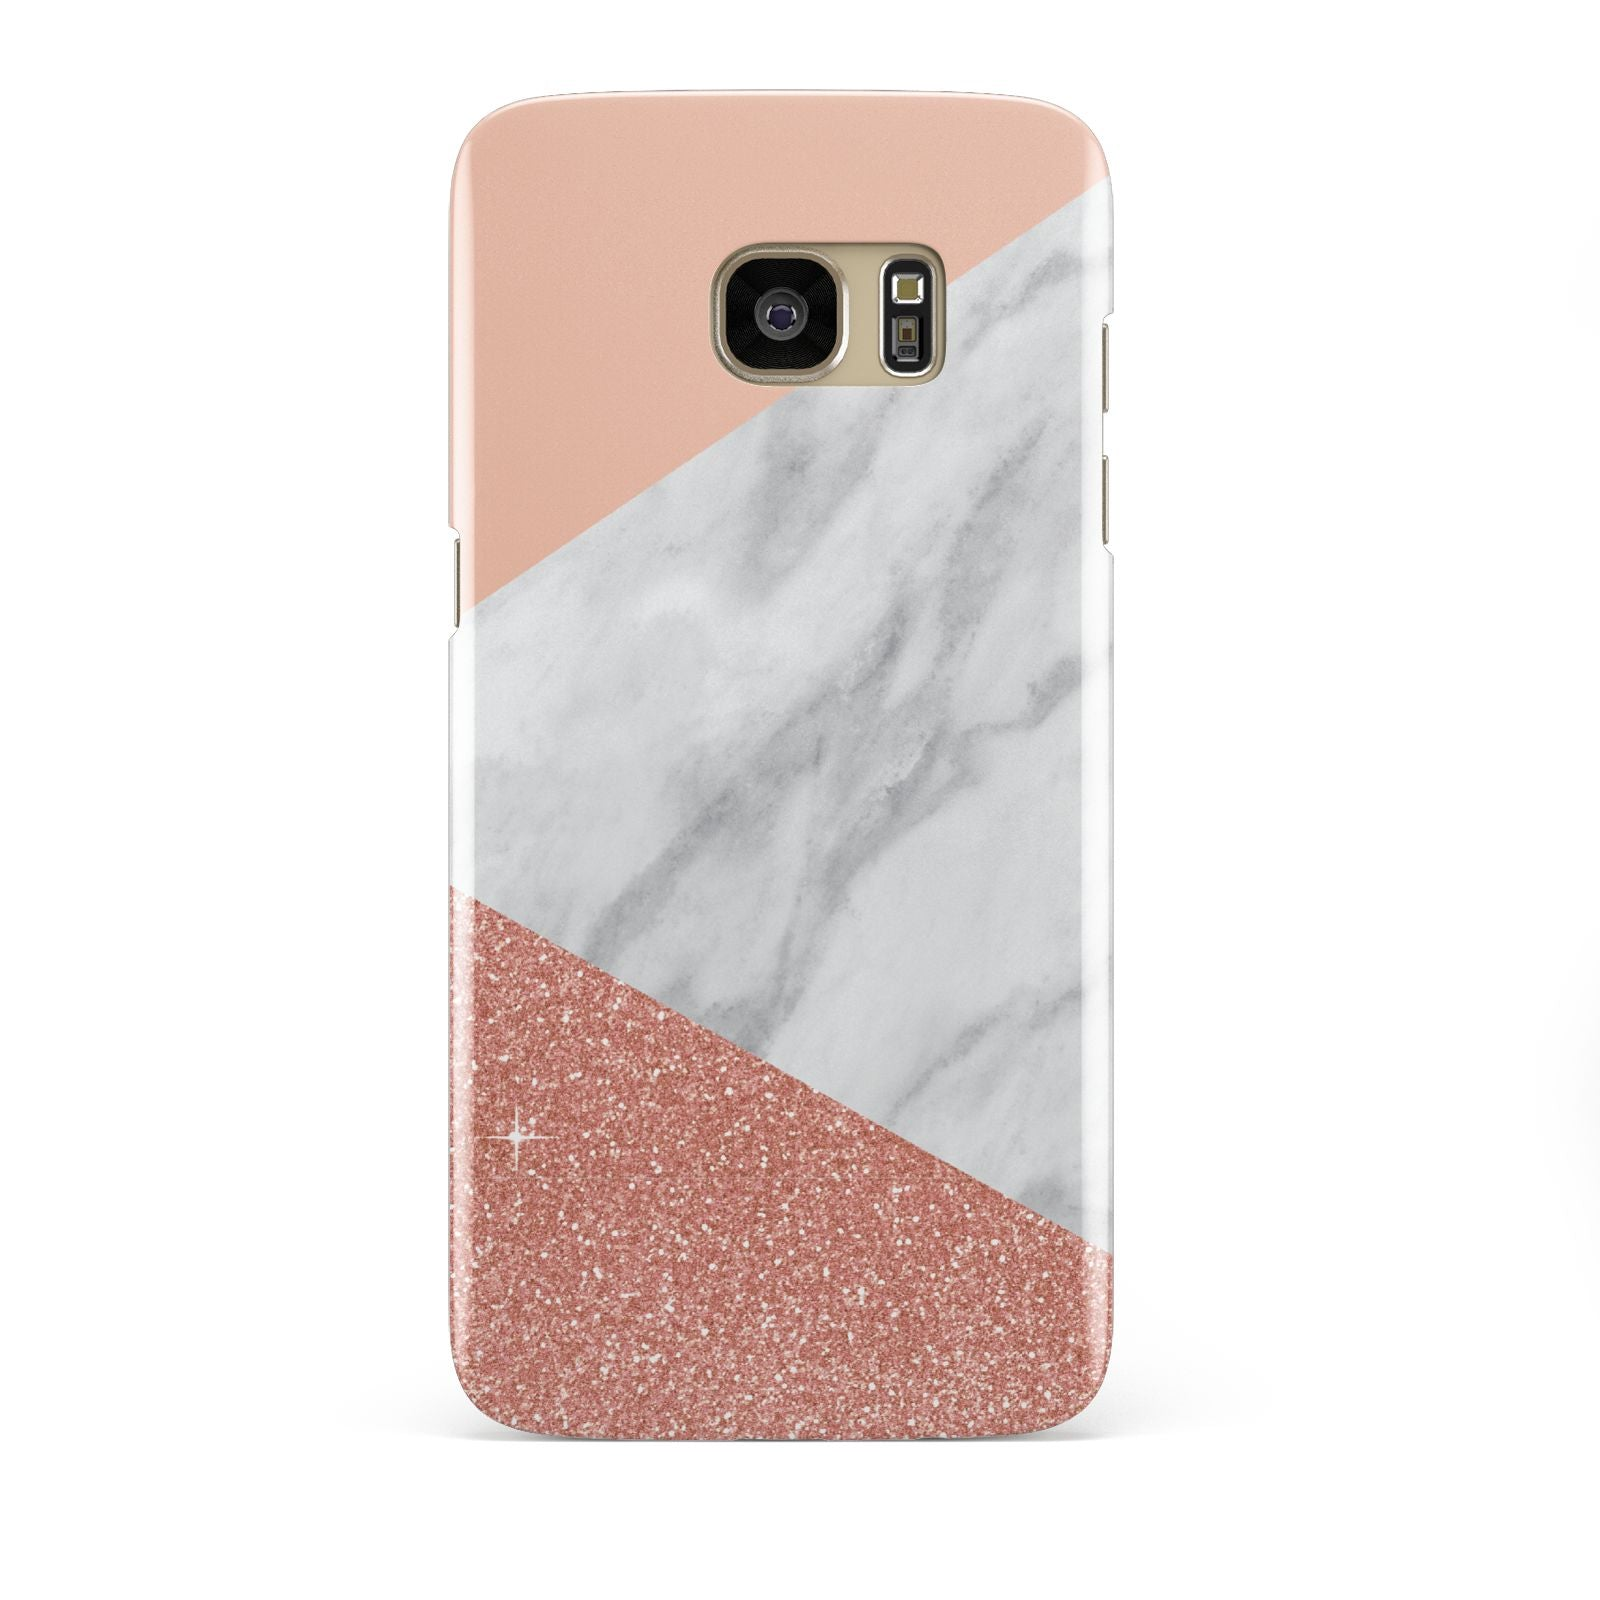 Marble White Rose Gold Samsung Galaxy S7 Edge Case